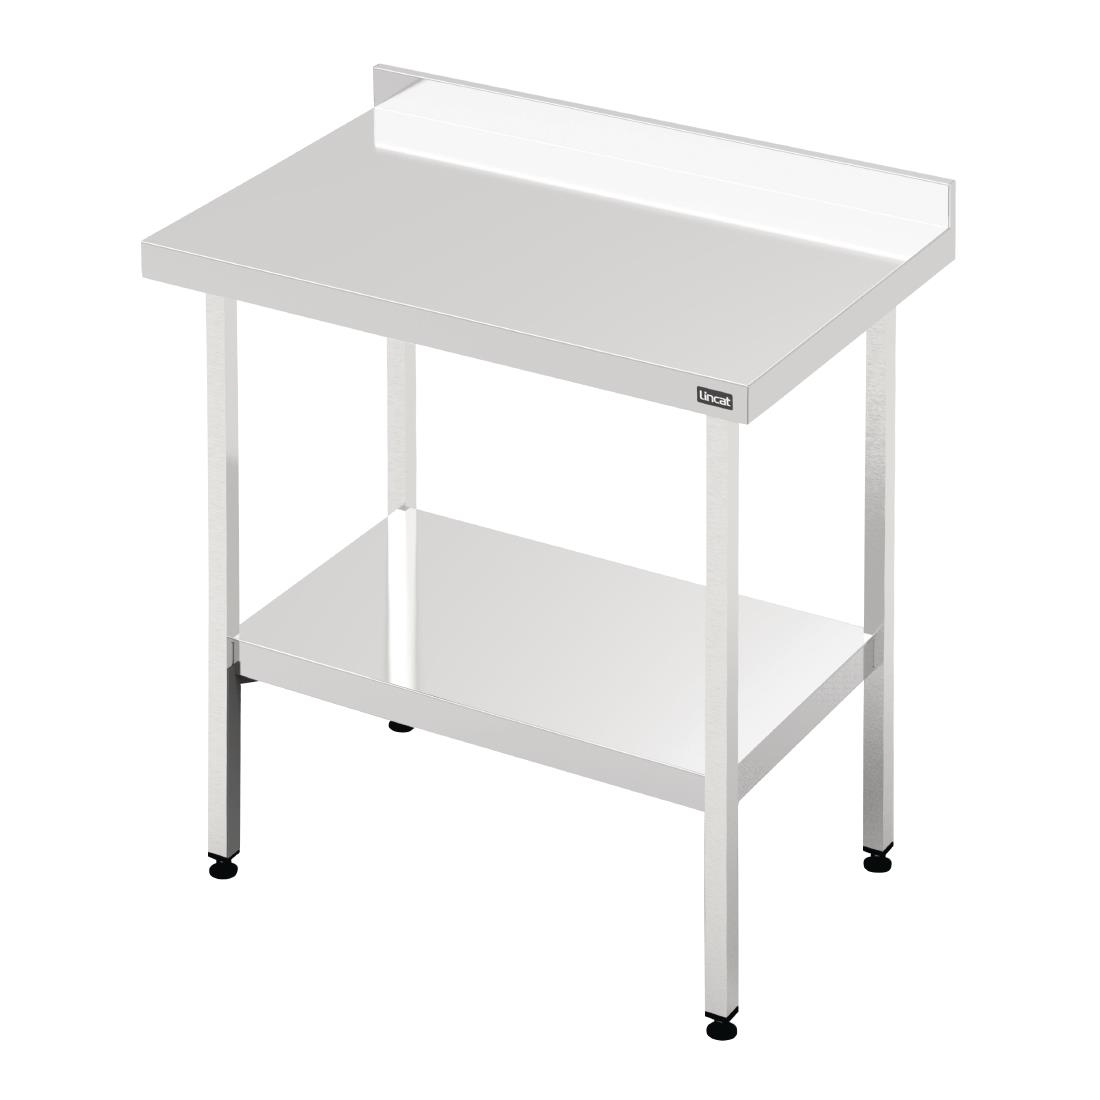 Image of Lincat 600 Series Stainless Steel Wall Table with Undershelf 1200mm